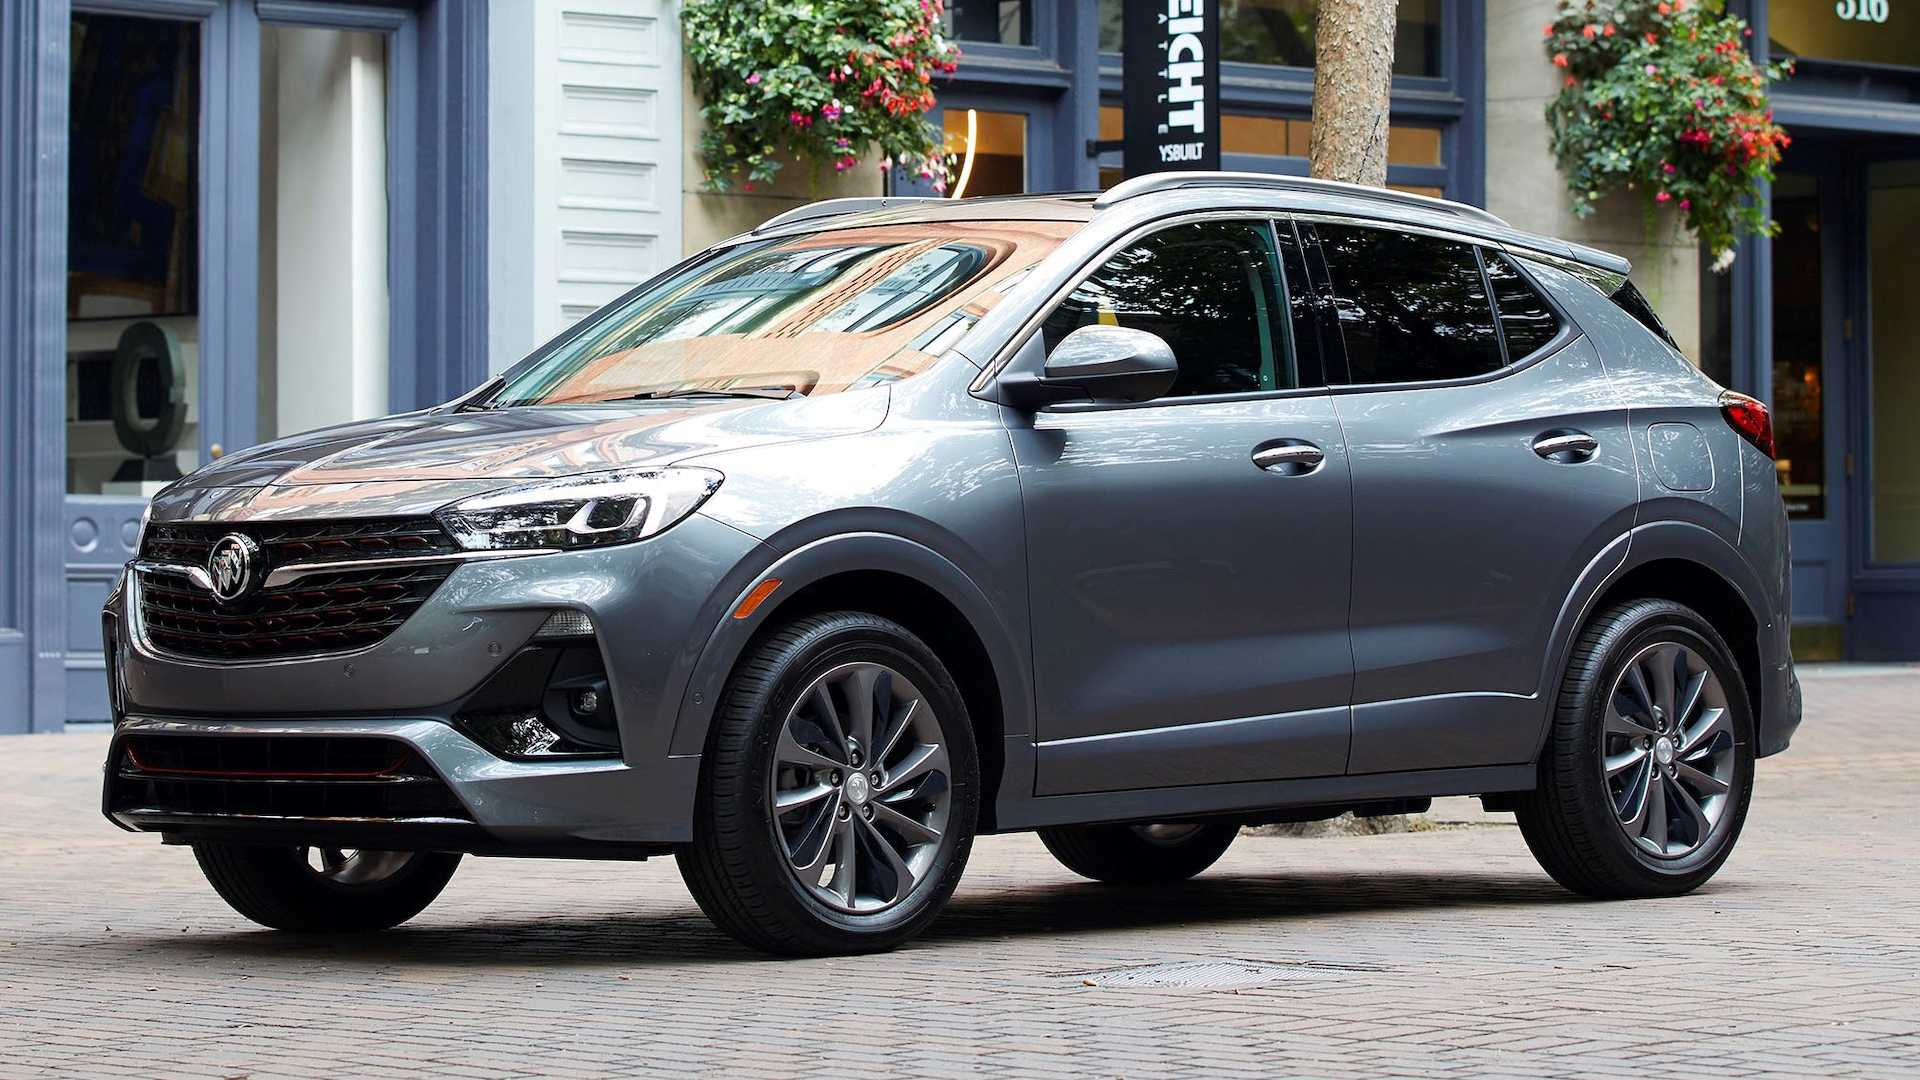 2021 Buick Encore Gx Details Emerge: Styling Tweaks, More Tech New 2021 Buick Encore Gx Preferred, Problems, Photos